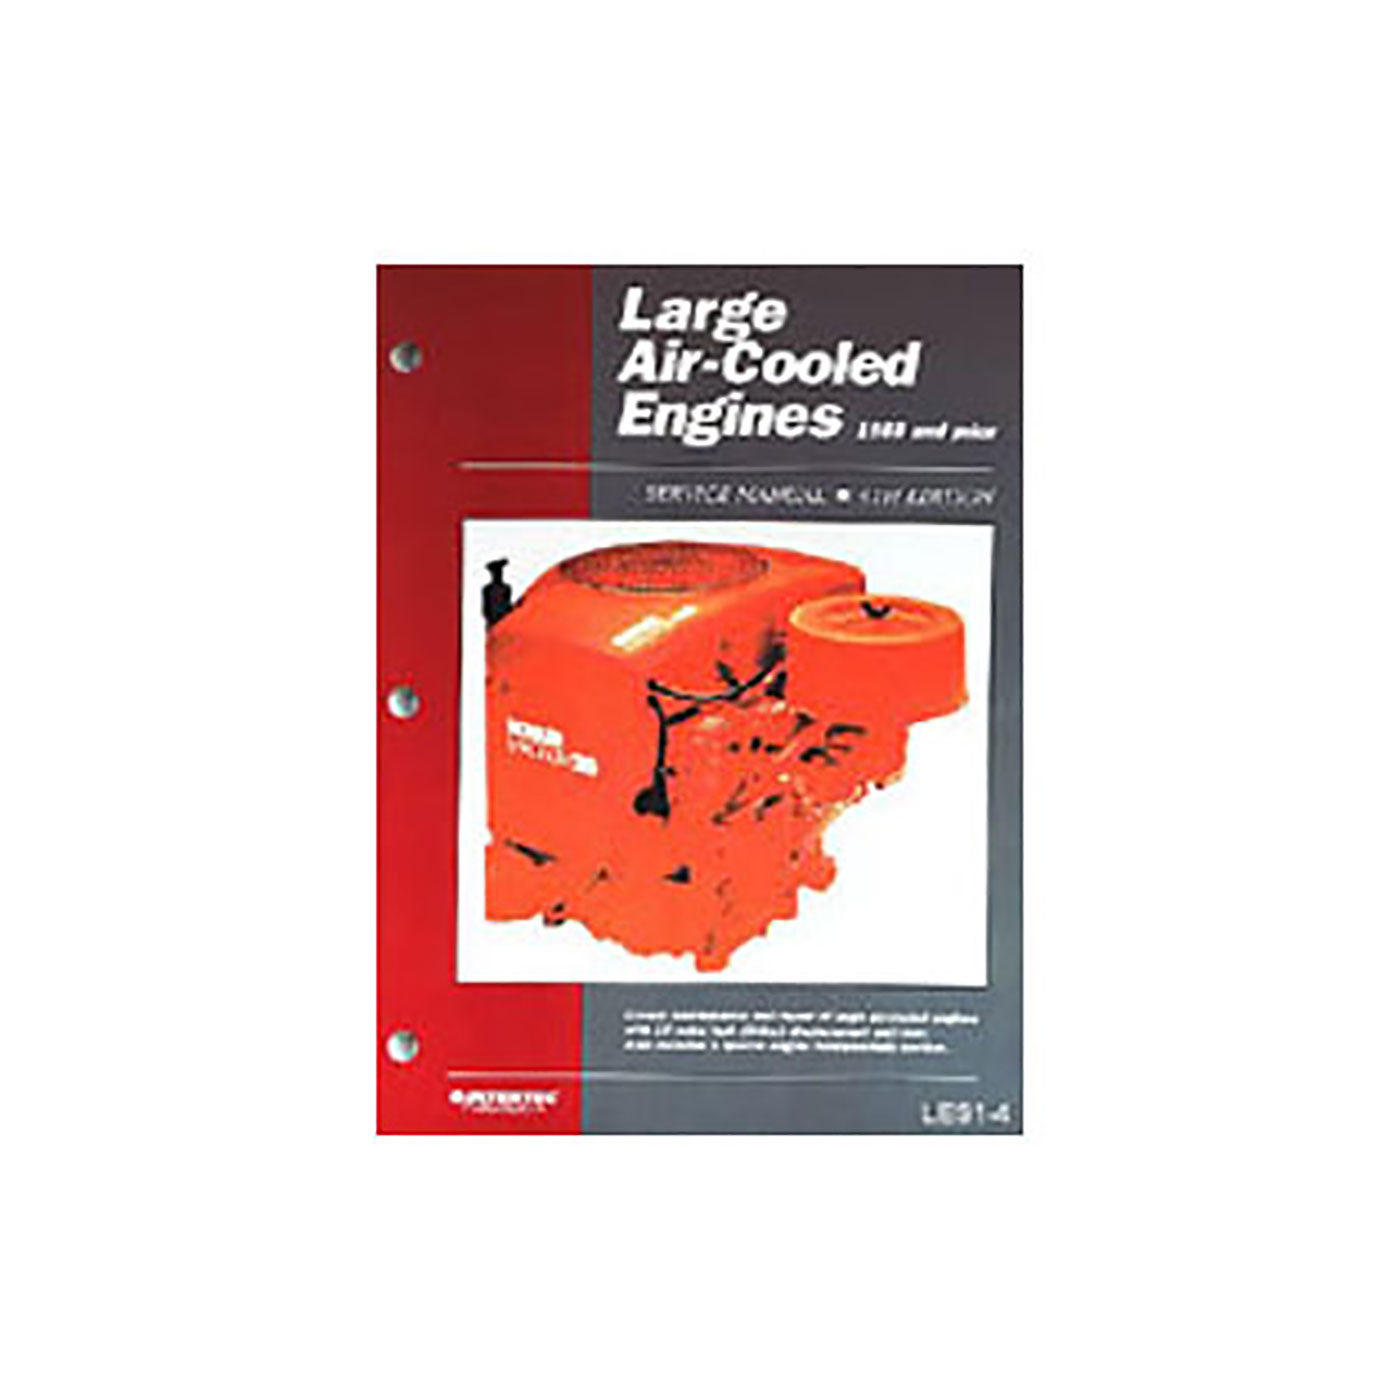 Large Air-Cooled Engines Maintenance & Repair Manual (1988 and prior)